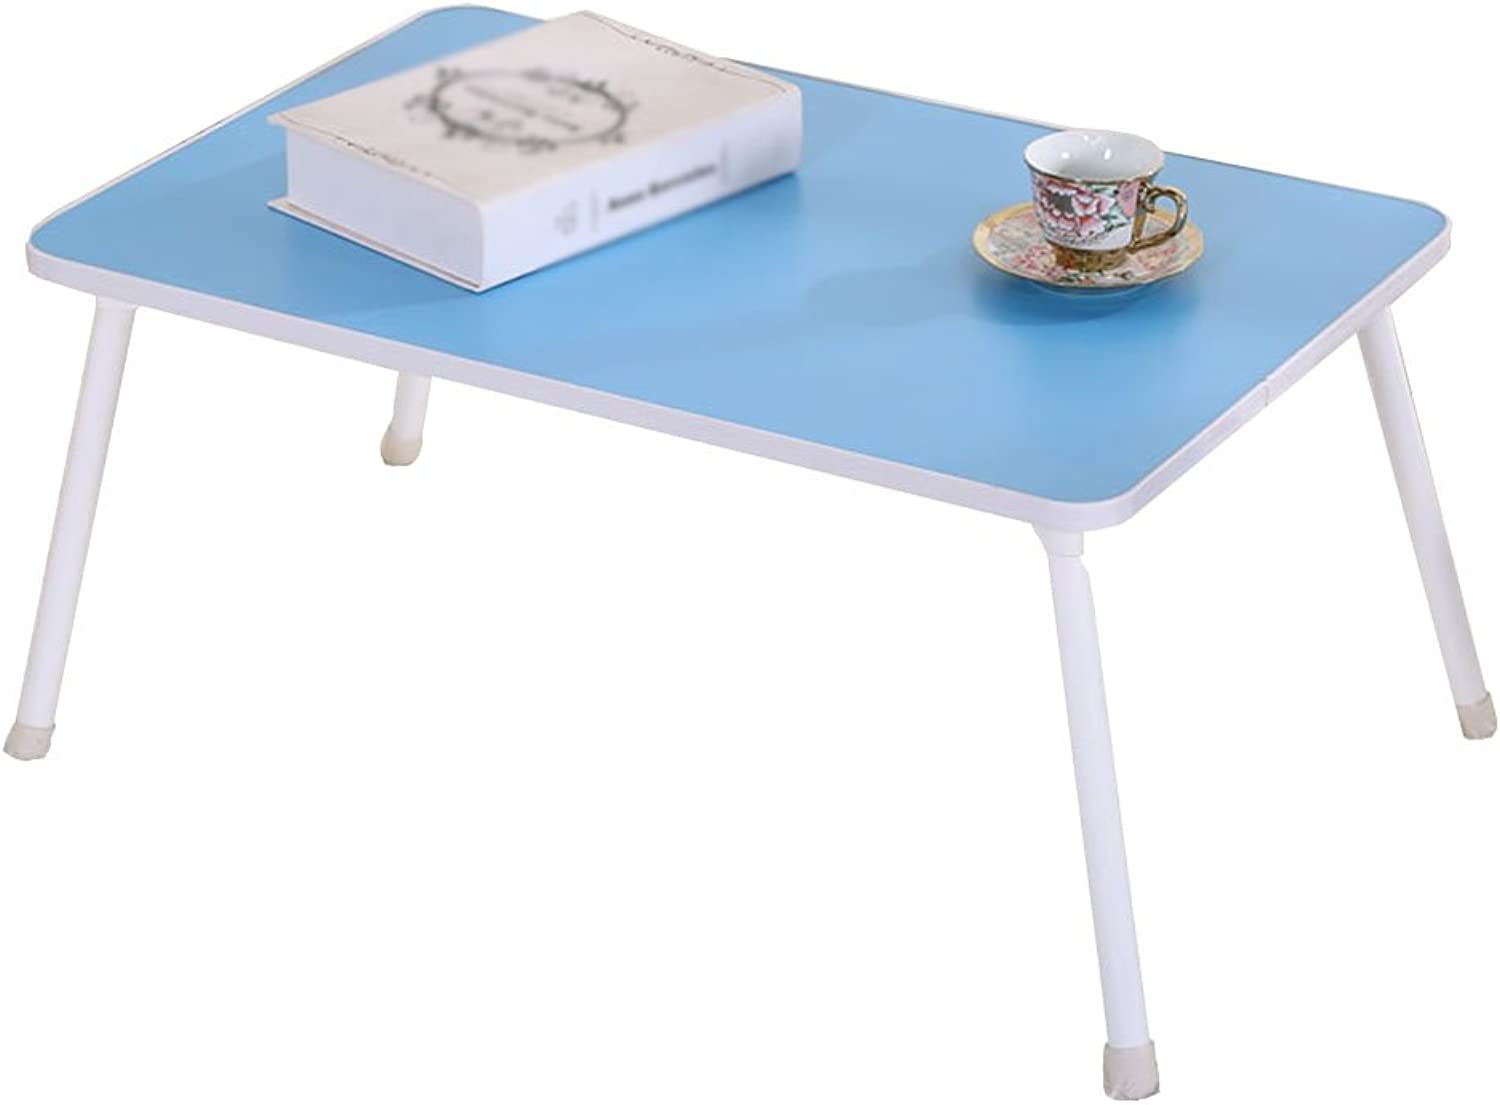 Chunlan Folding Table Simple Bed Laptop Desk Portable Writing Desk Dining Table No Assembly Required, 60  40  28cm (color   bluee 60  40  28cm)